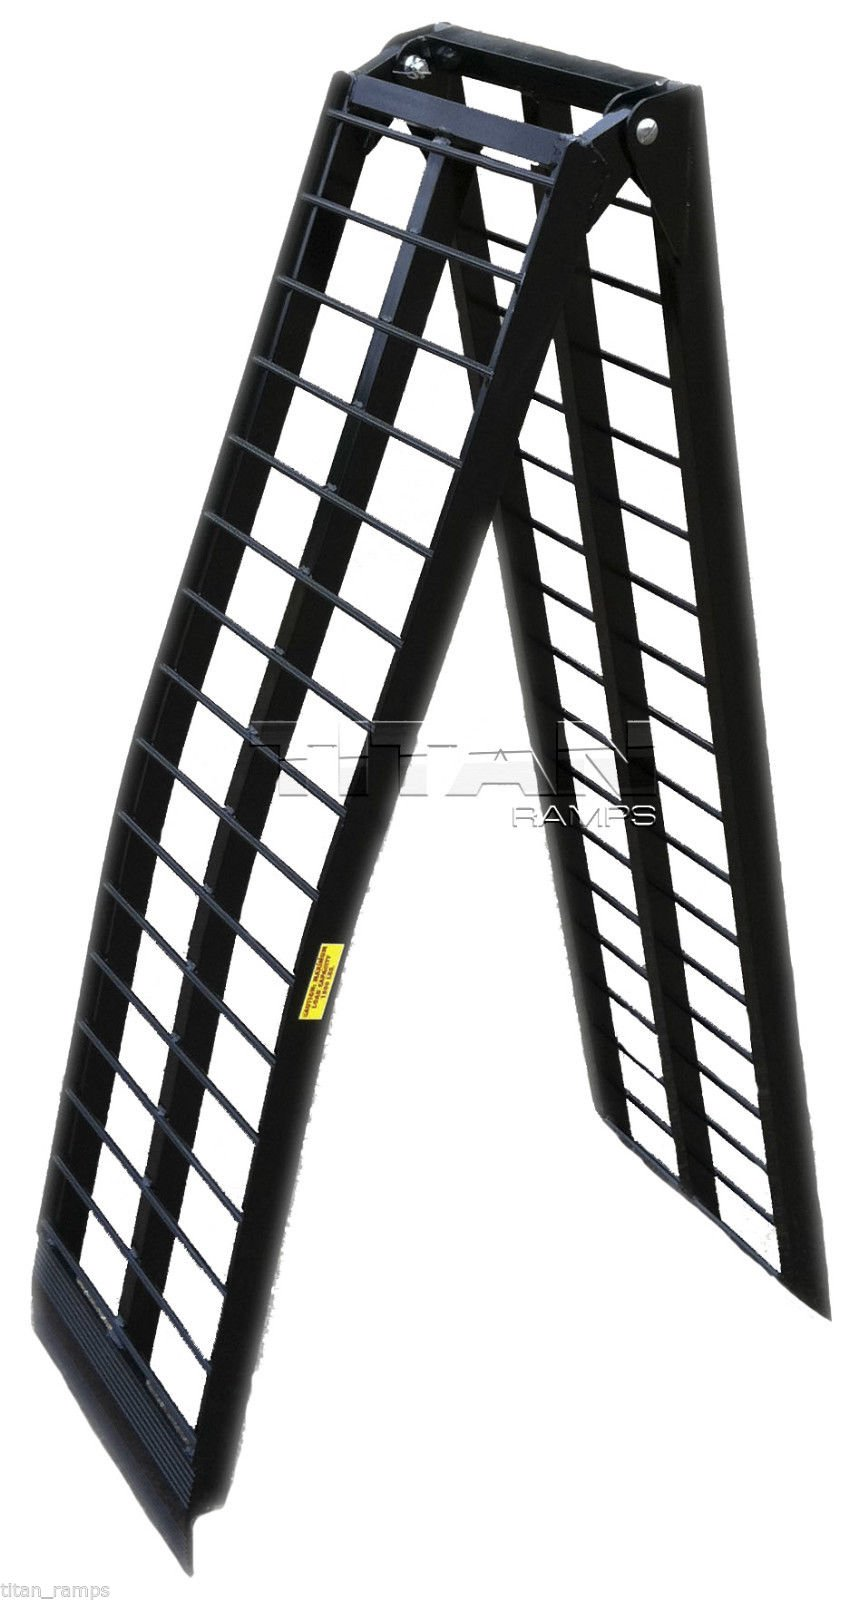 10 ft HD Wide Motorcycle Loading Ramp harley ramps cycle dirtbike truck (120 -M)